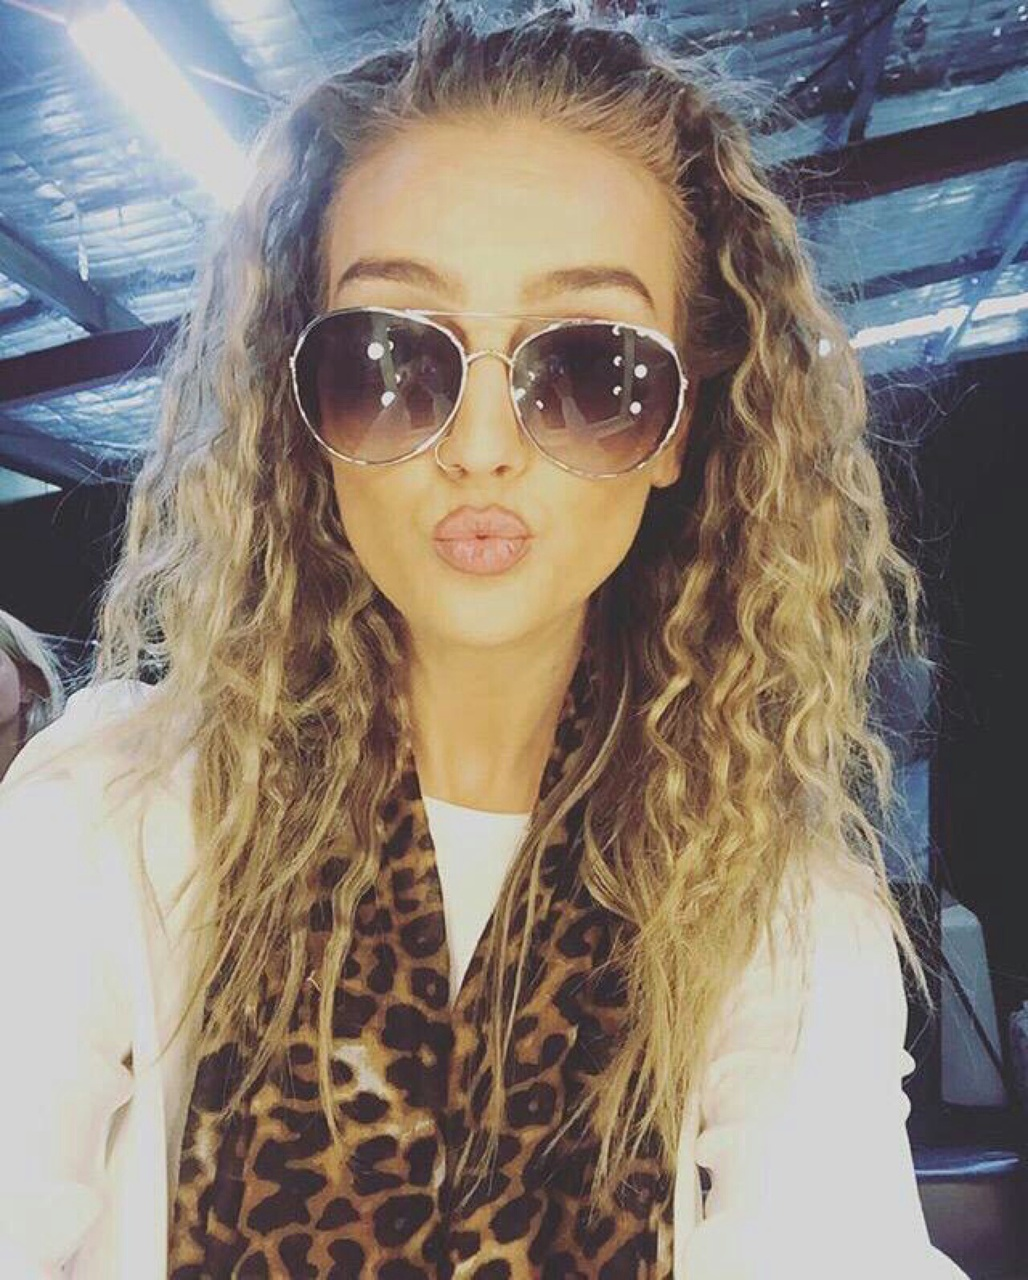 angel, barbie, beautiful, curly, diva, doll, duck, eyebrows, face, flawless, georgous, hair, leopard, lips, little mix, nose, perfect face, perfection, perrie edwards, piercing, queen, scarf, sunglasses